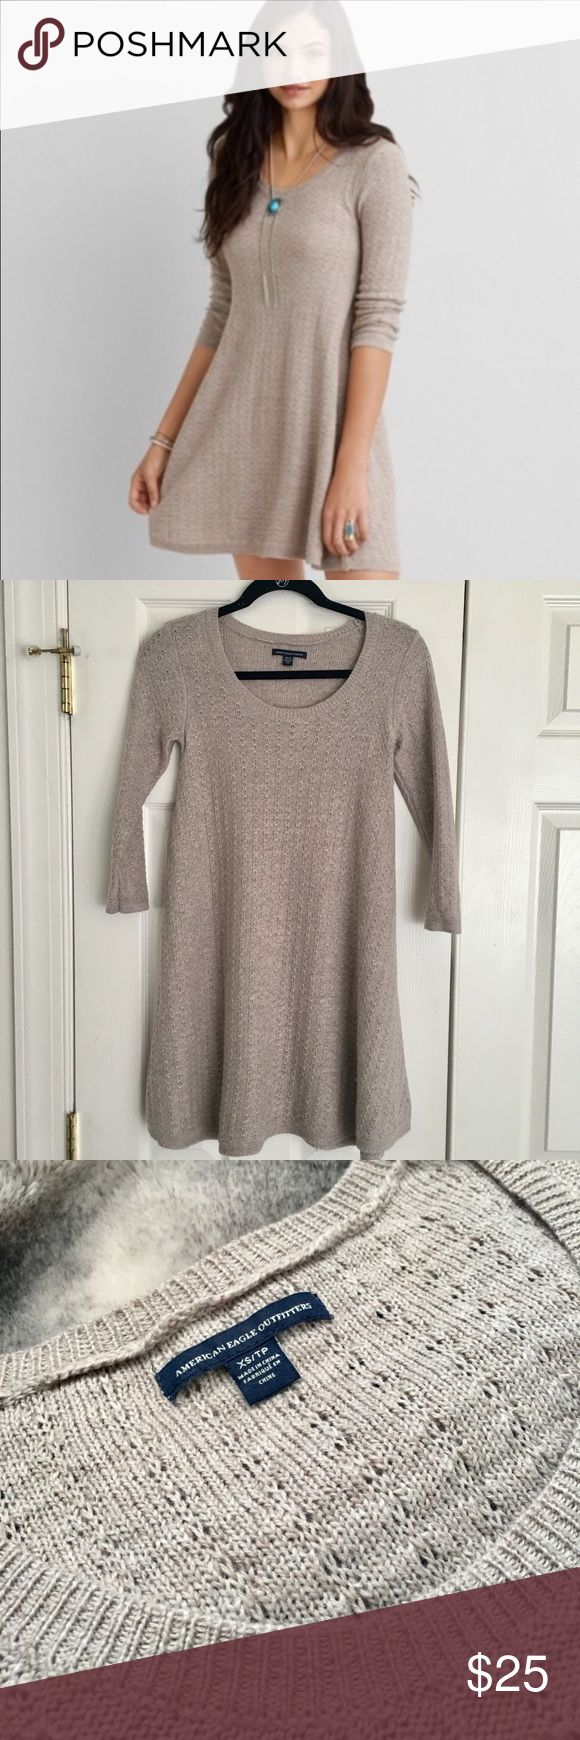 NWOT American Eagle Sweater Dress New without tags! Never got a chance to wear it! No flaws! American Eagle Outfitters Dresses Mini